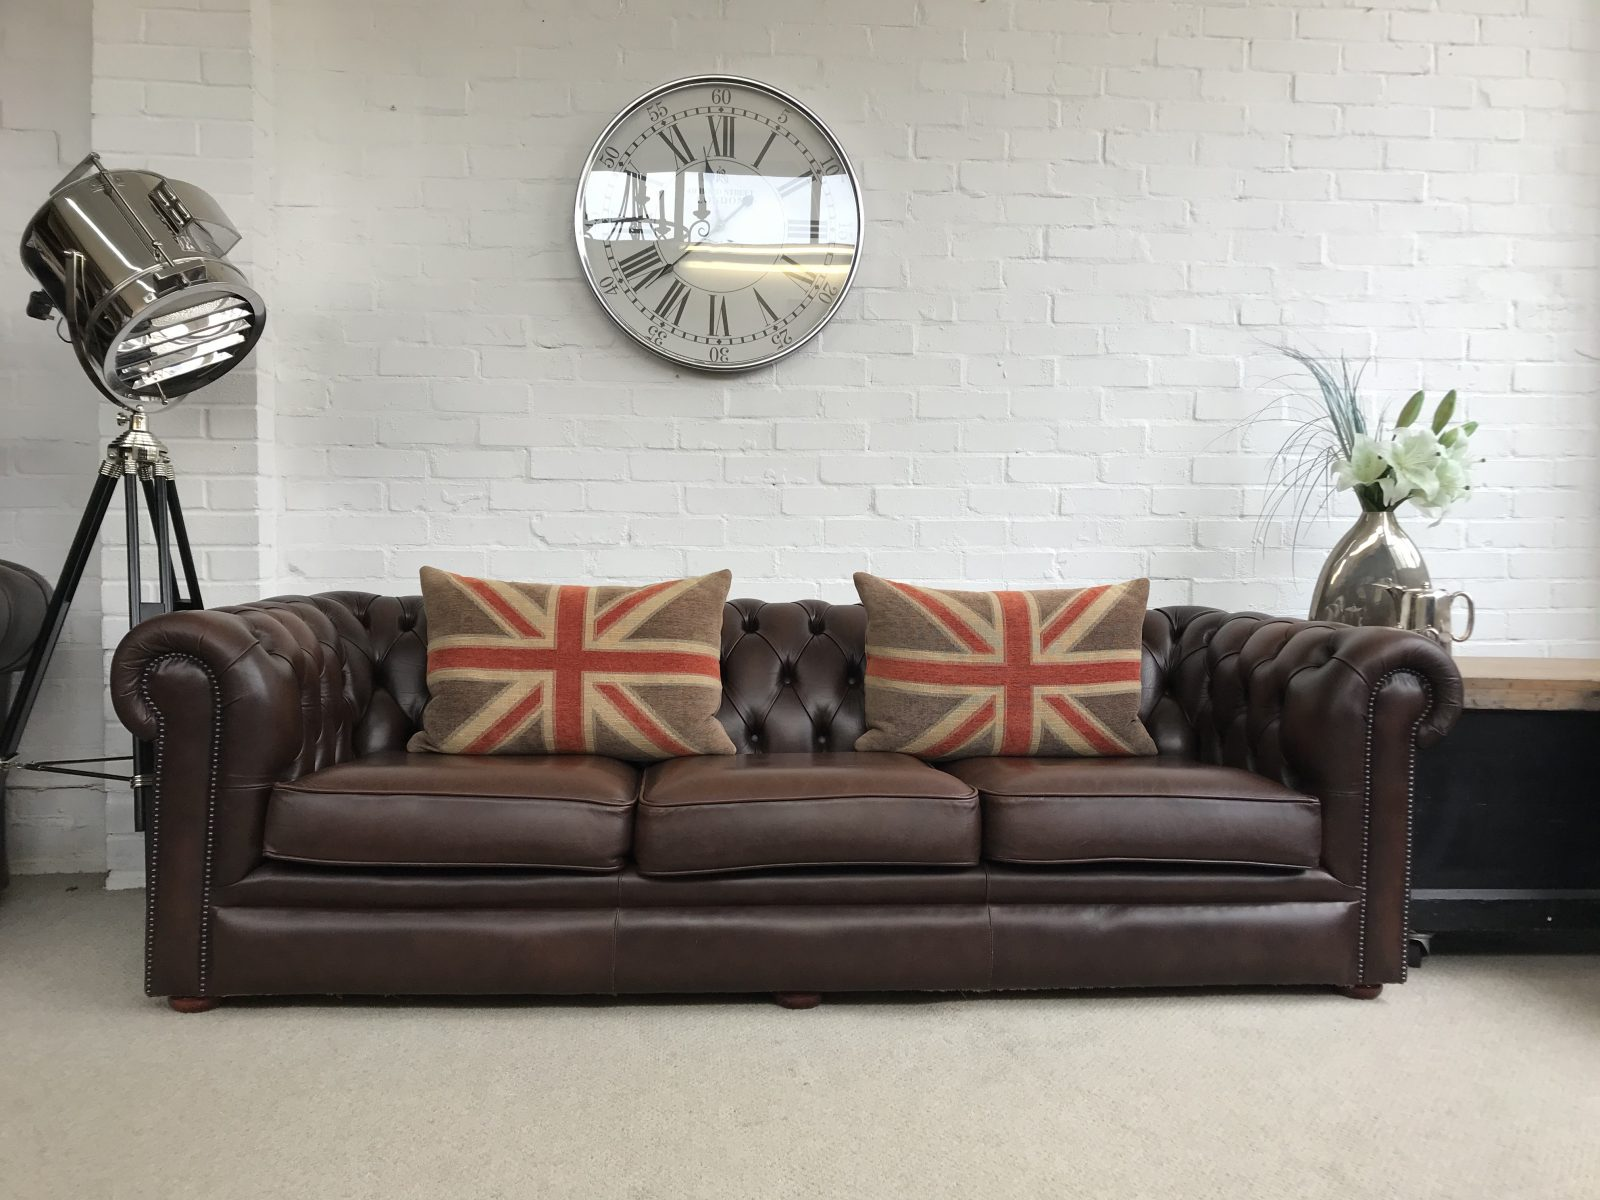 Brown 4 Seater Chesterfield Sofa.